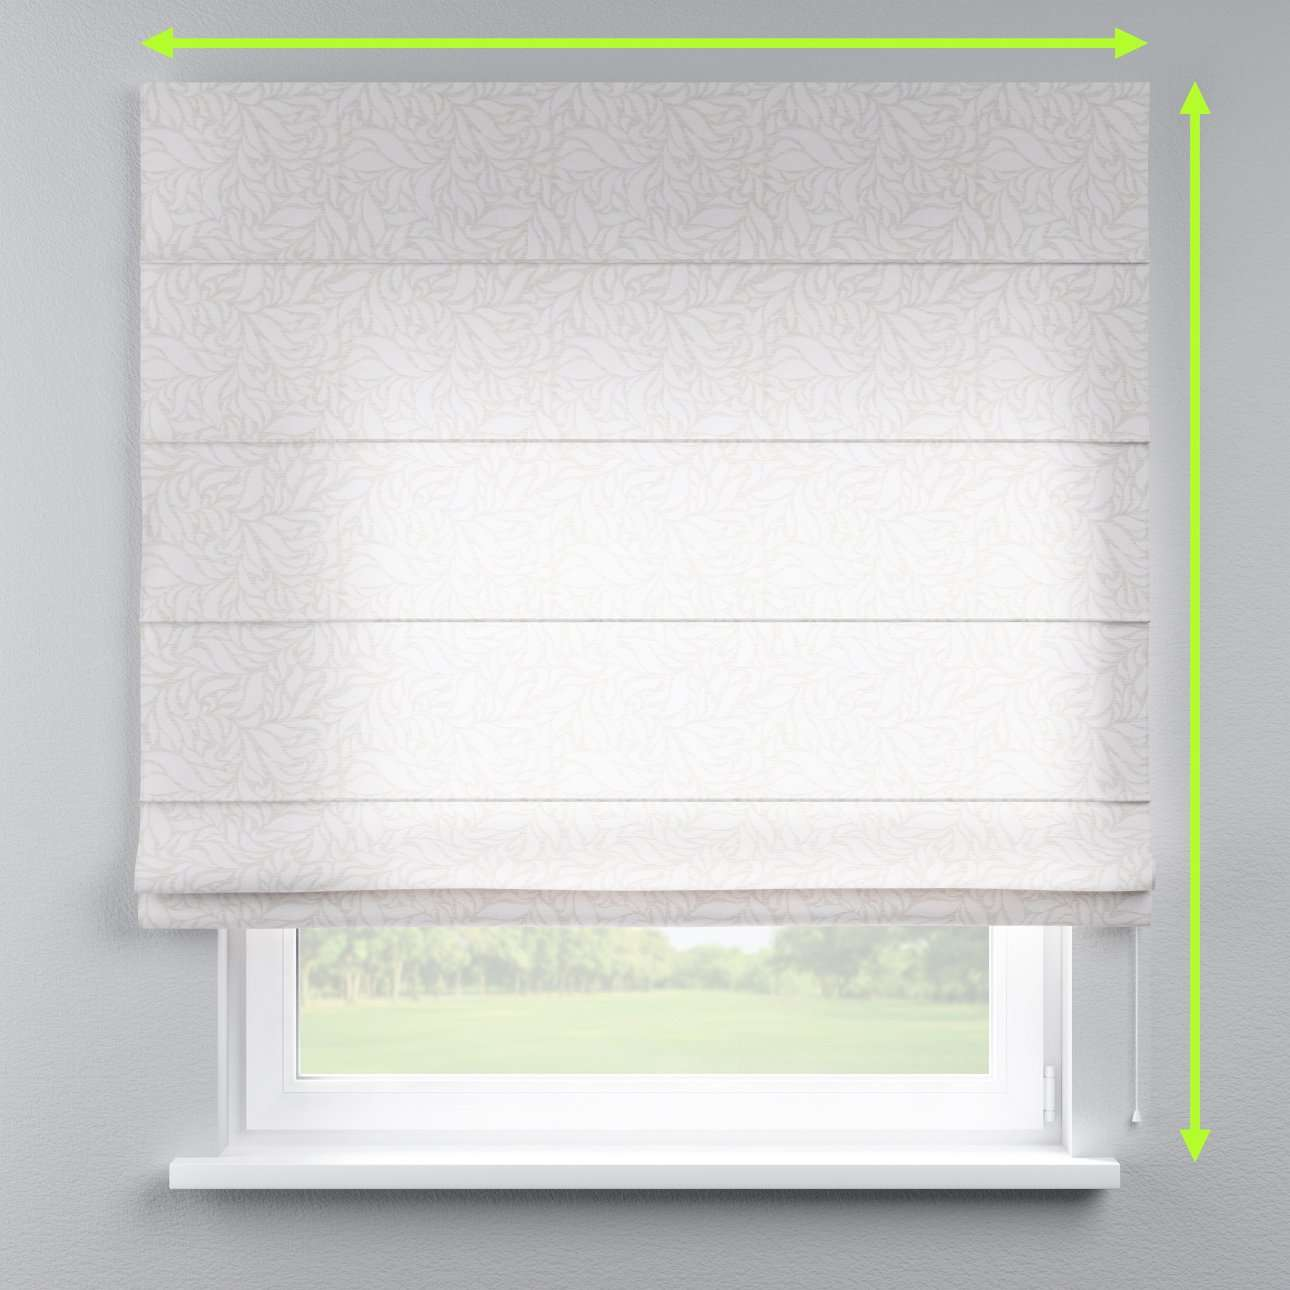 Capri roman blind in collection Venice, fabric: 140-50